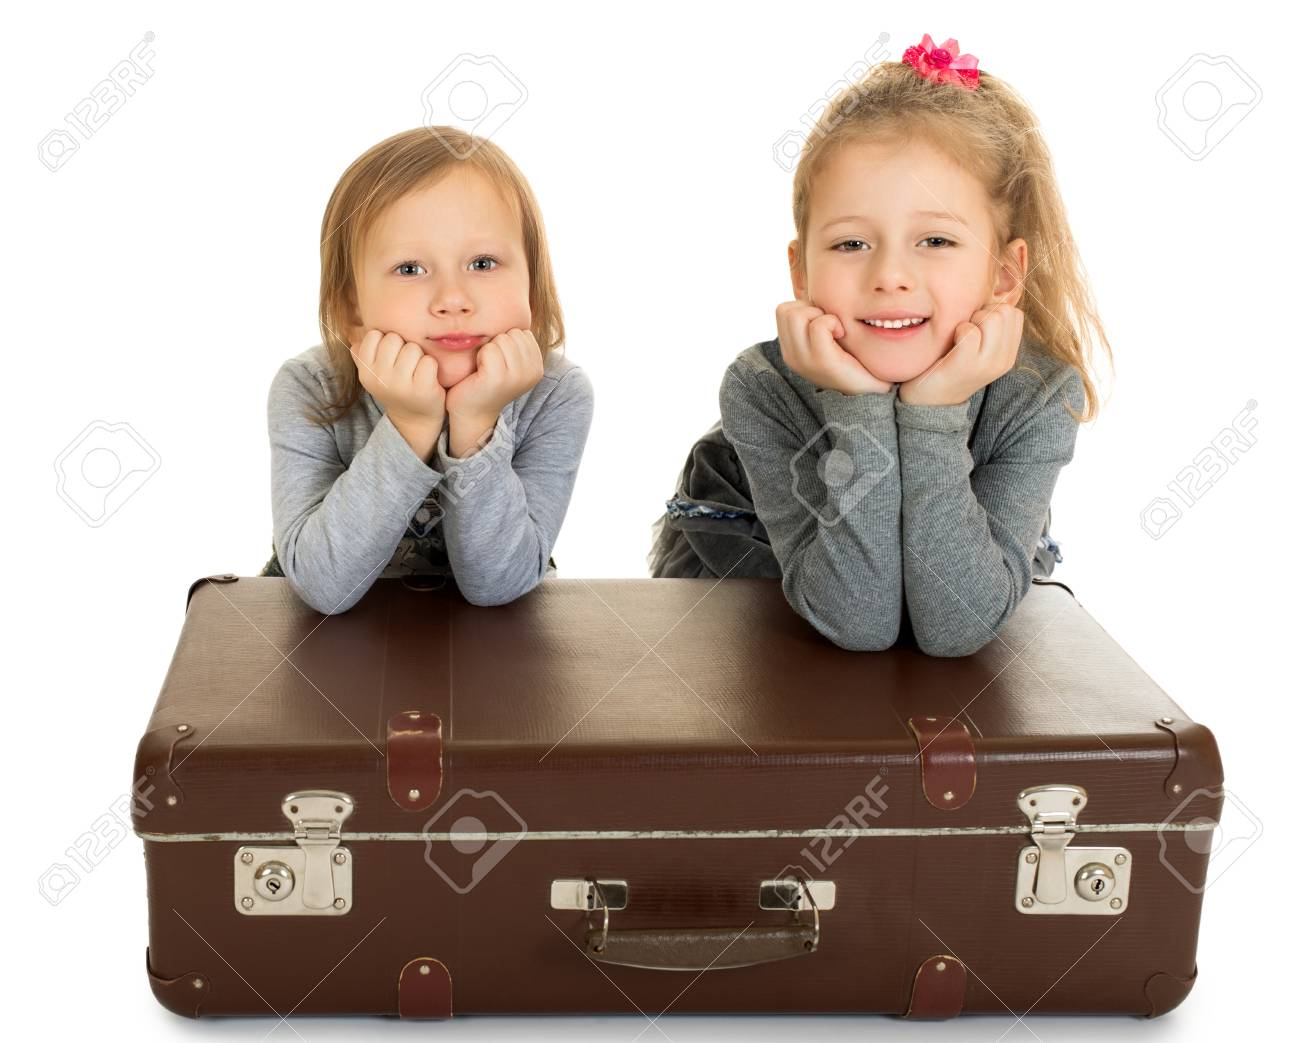 2 Beautiful Little Girls Sisters Leaning On A Big Old Suitcase Posing In Front Of The